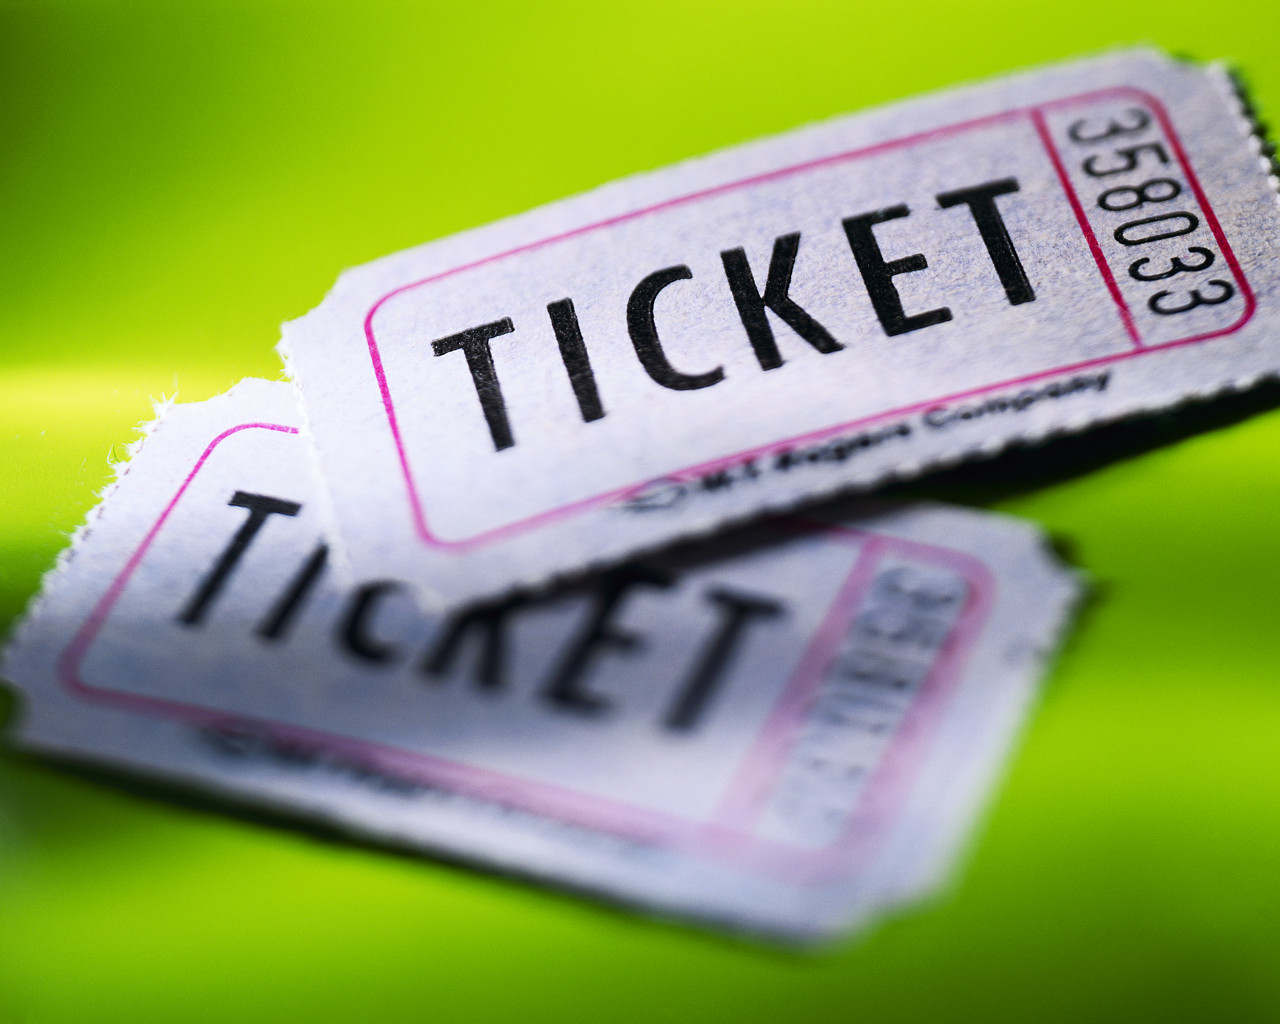 Live outside Jamaica? How to get tickets for Jamaica carnival 2014 fetes!